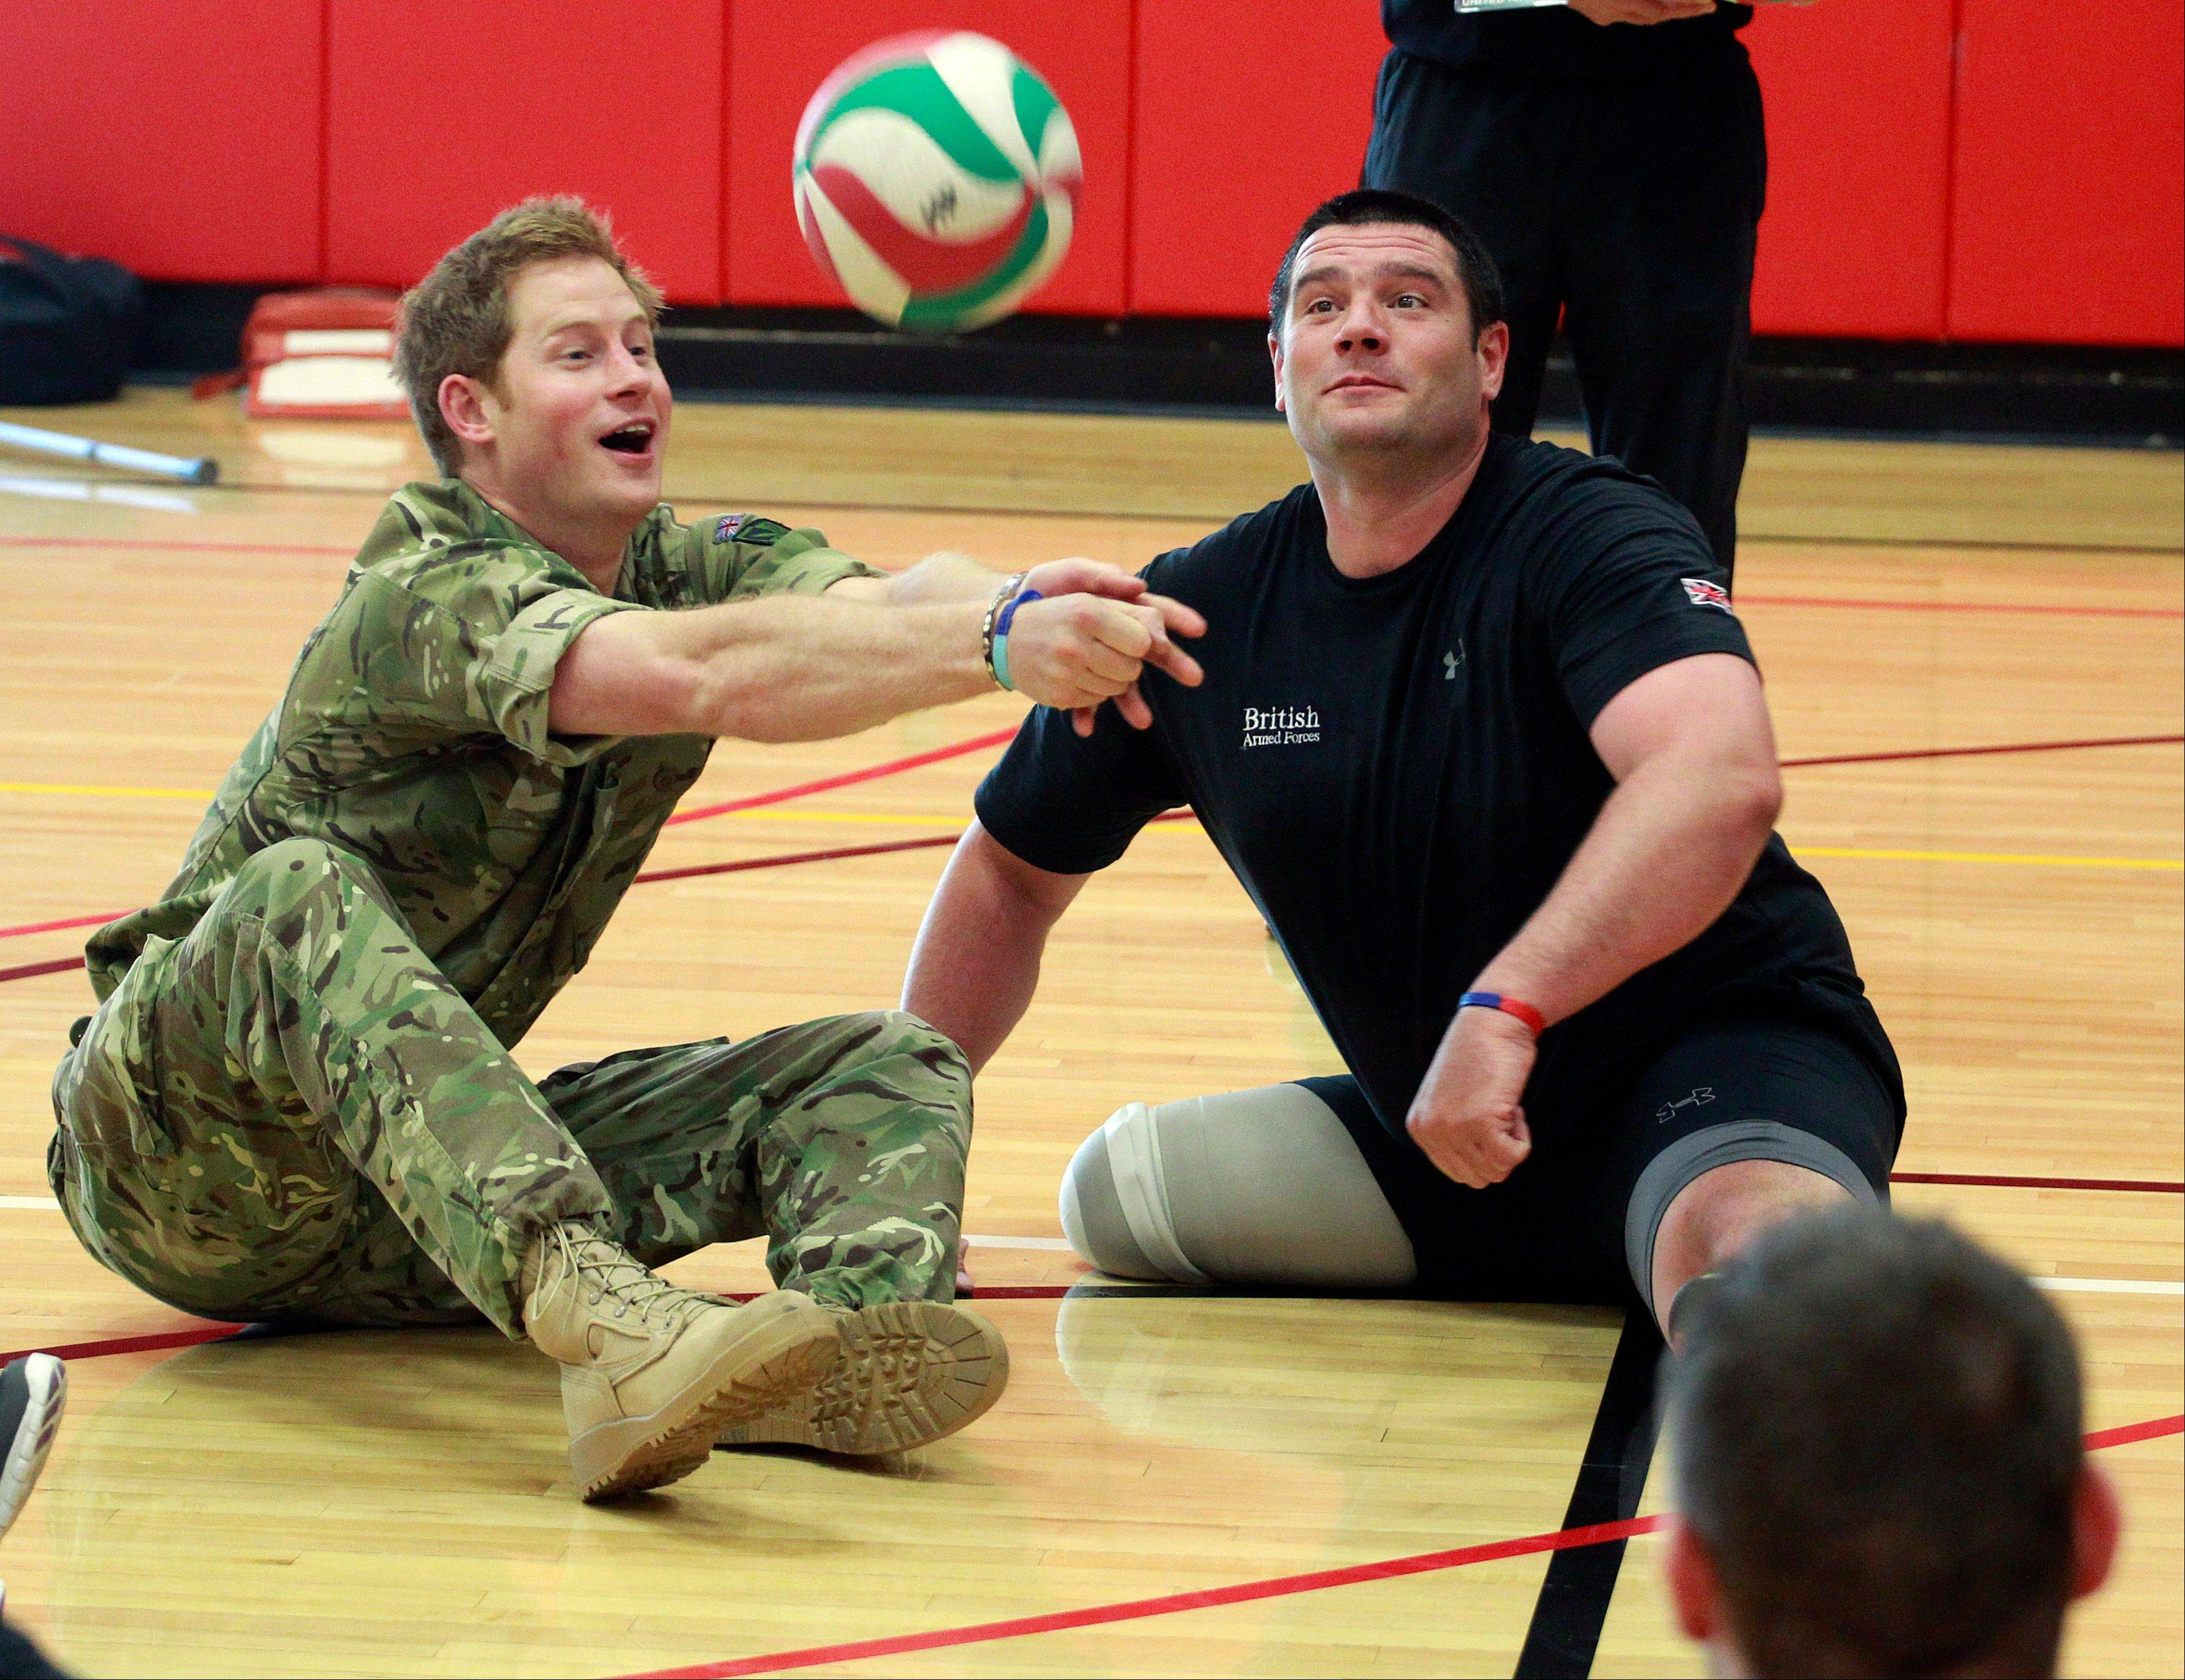 Prince Harry plays volleyball with members of the British Warrior Games Team Saturday in a gymnasium before the opening of the 2013 Warrior Games, at the U.S. Olympic Training Center, in Colorado Springs, Colo.